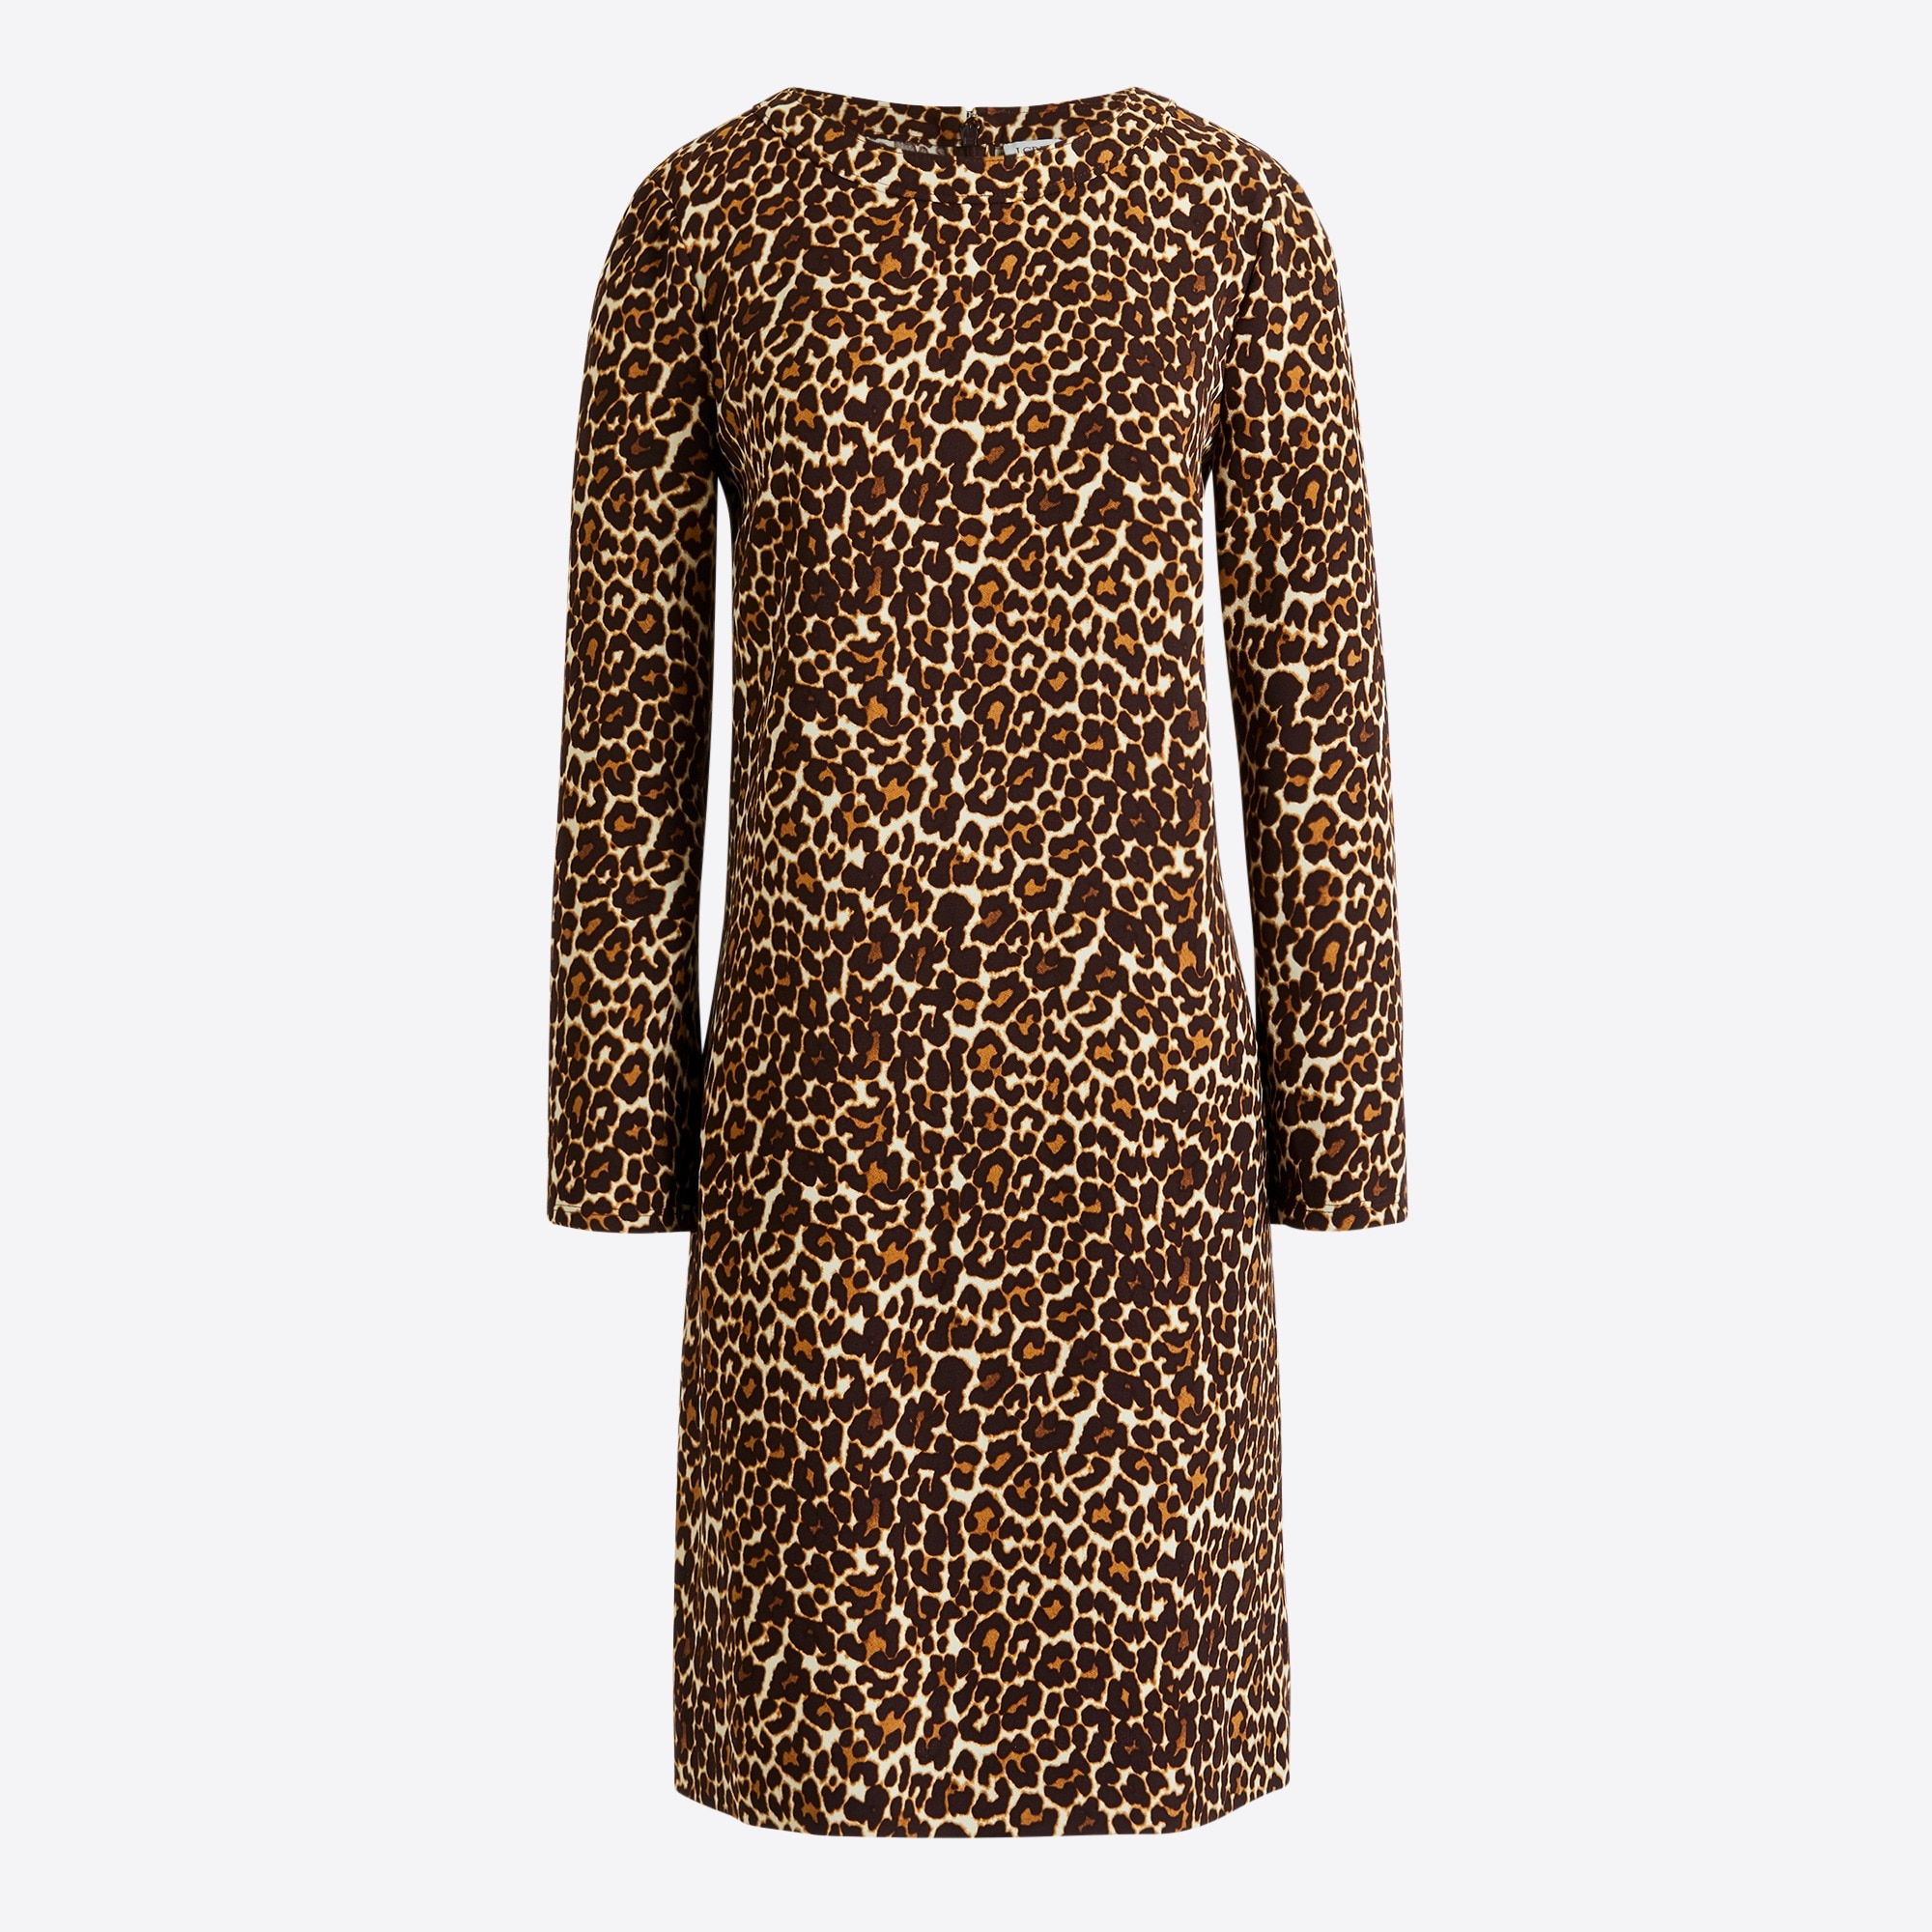 Image 2 for Crepe shift dress in cat print